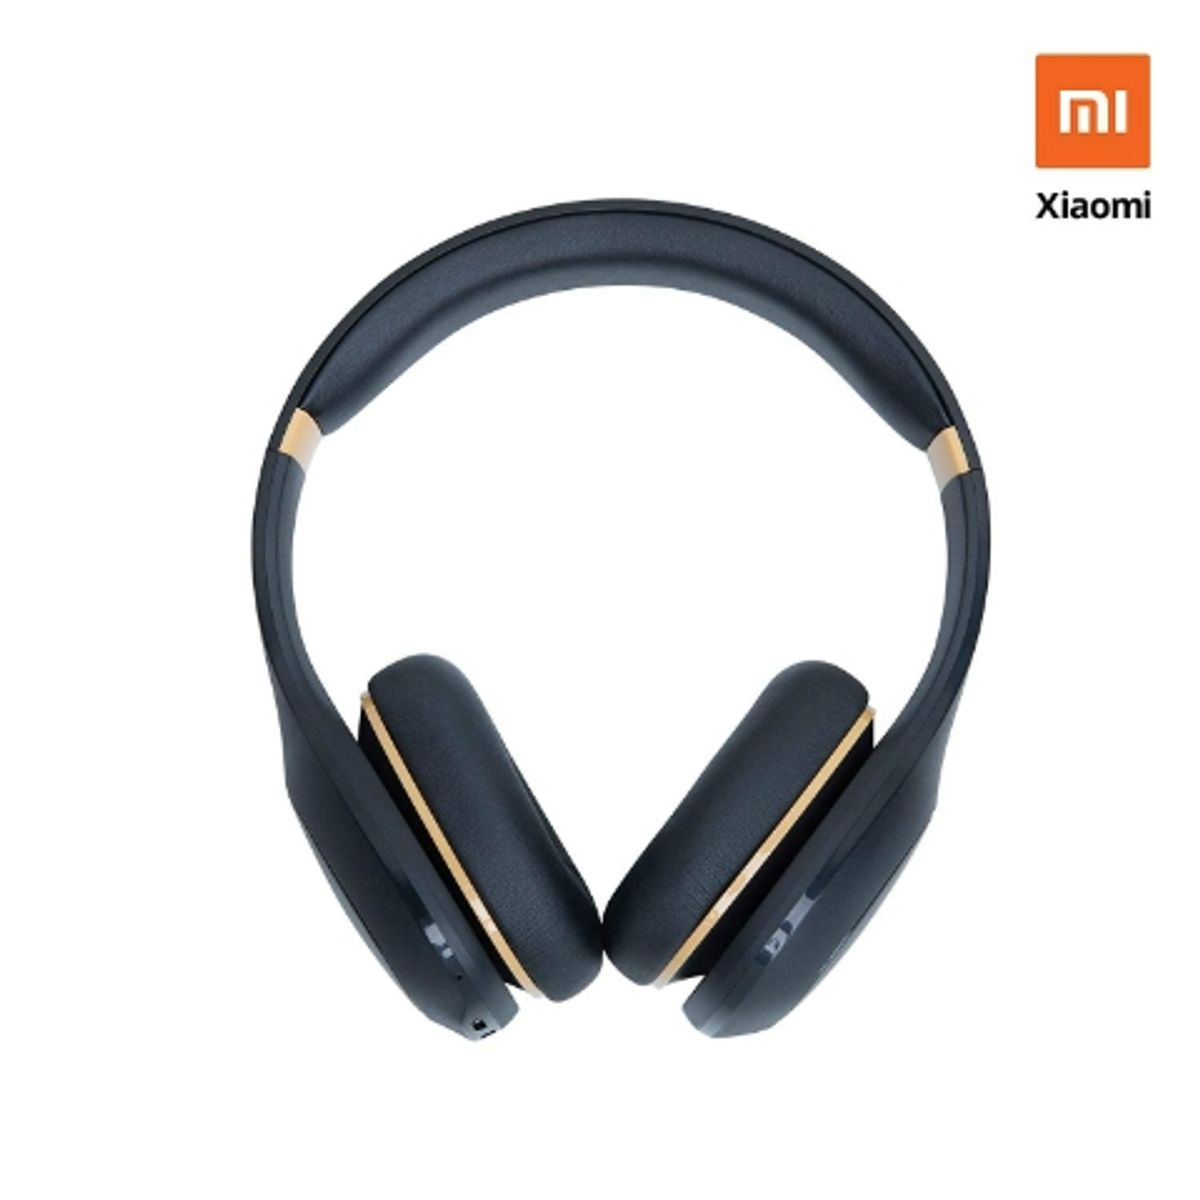 f0e63944356 Xiaomi Mi Super Bass Wireless Headphones launched in India at Rs 1,799